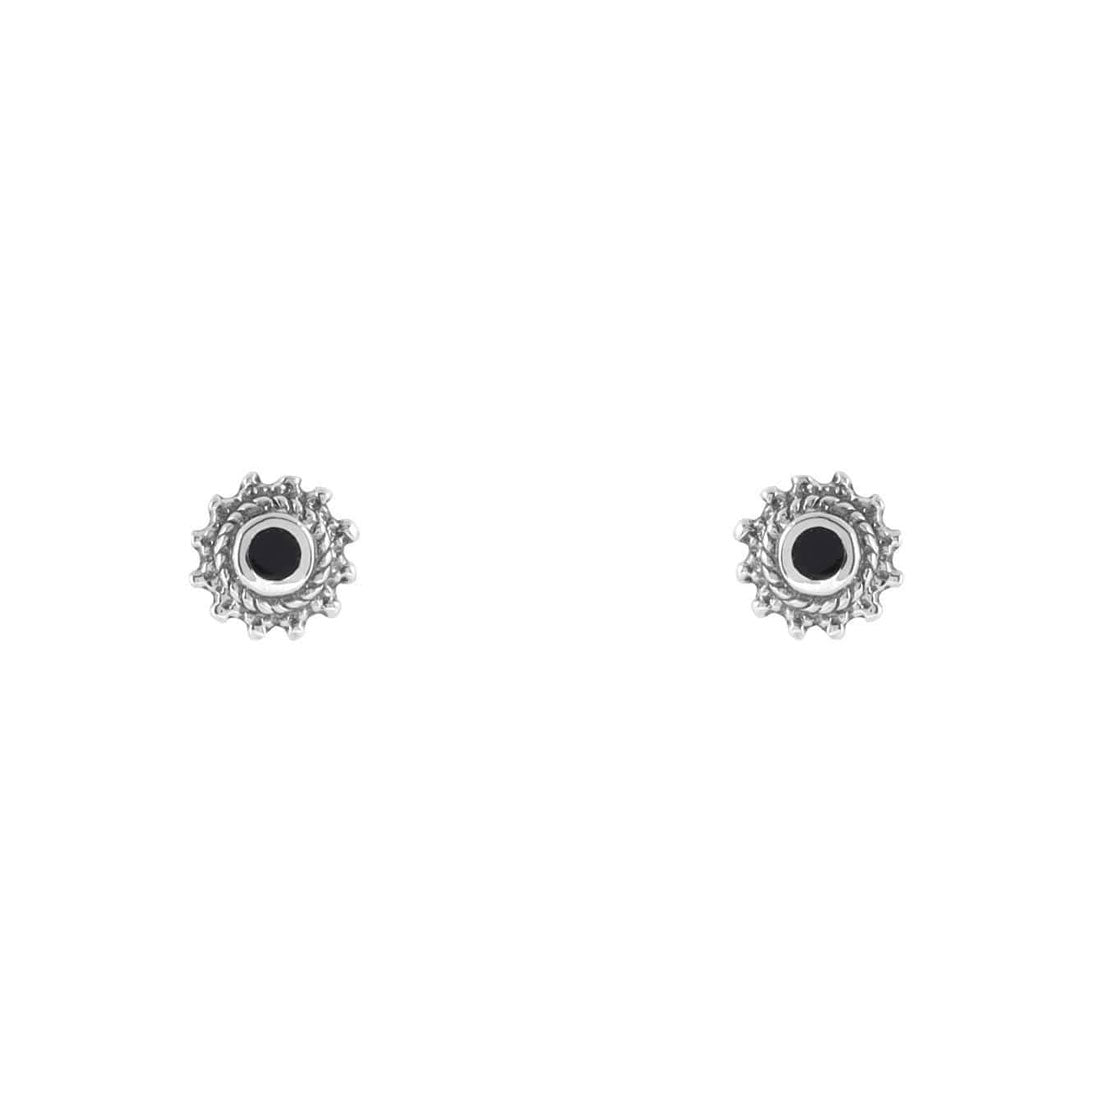 Midsummer Star Earrings Kuta Sunset Onyx Studs